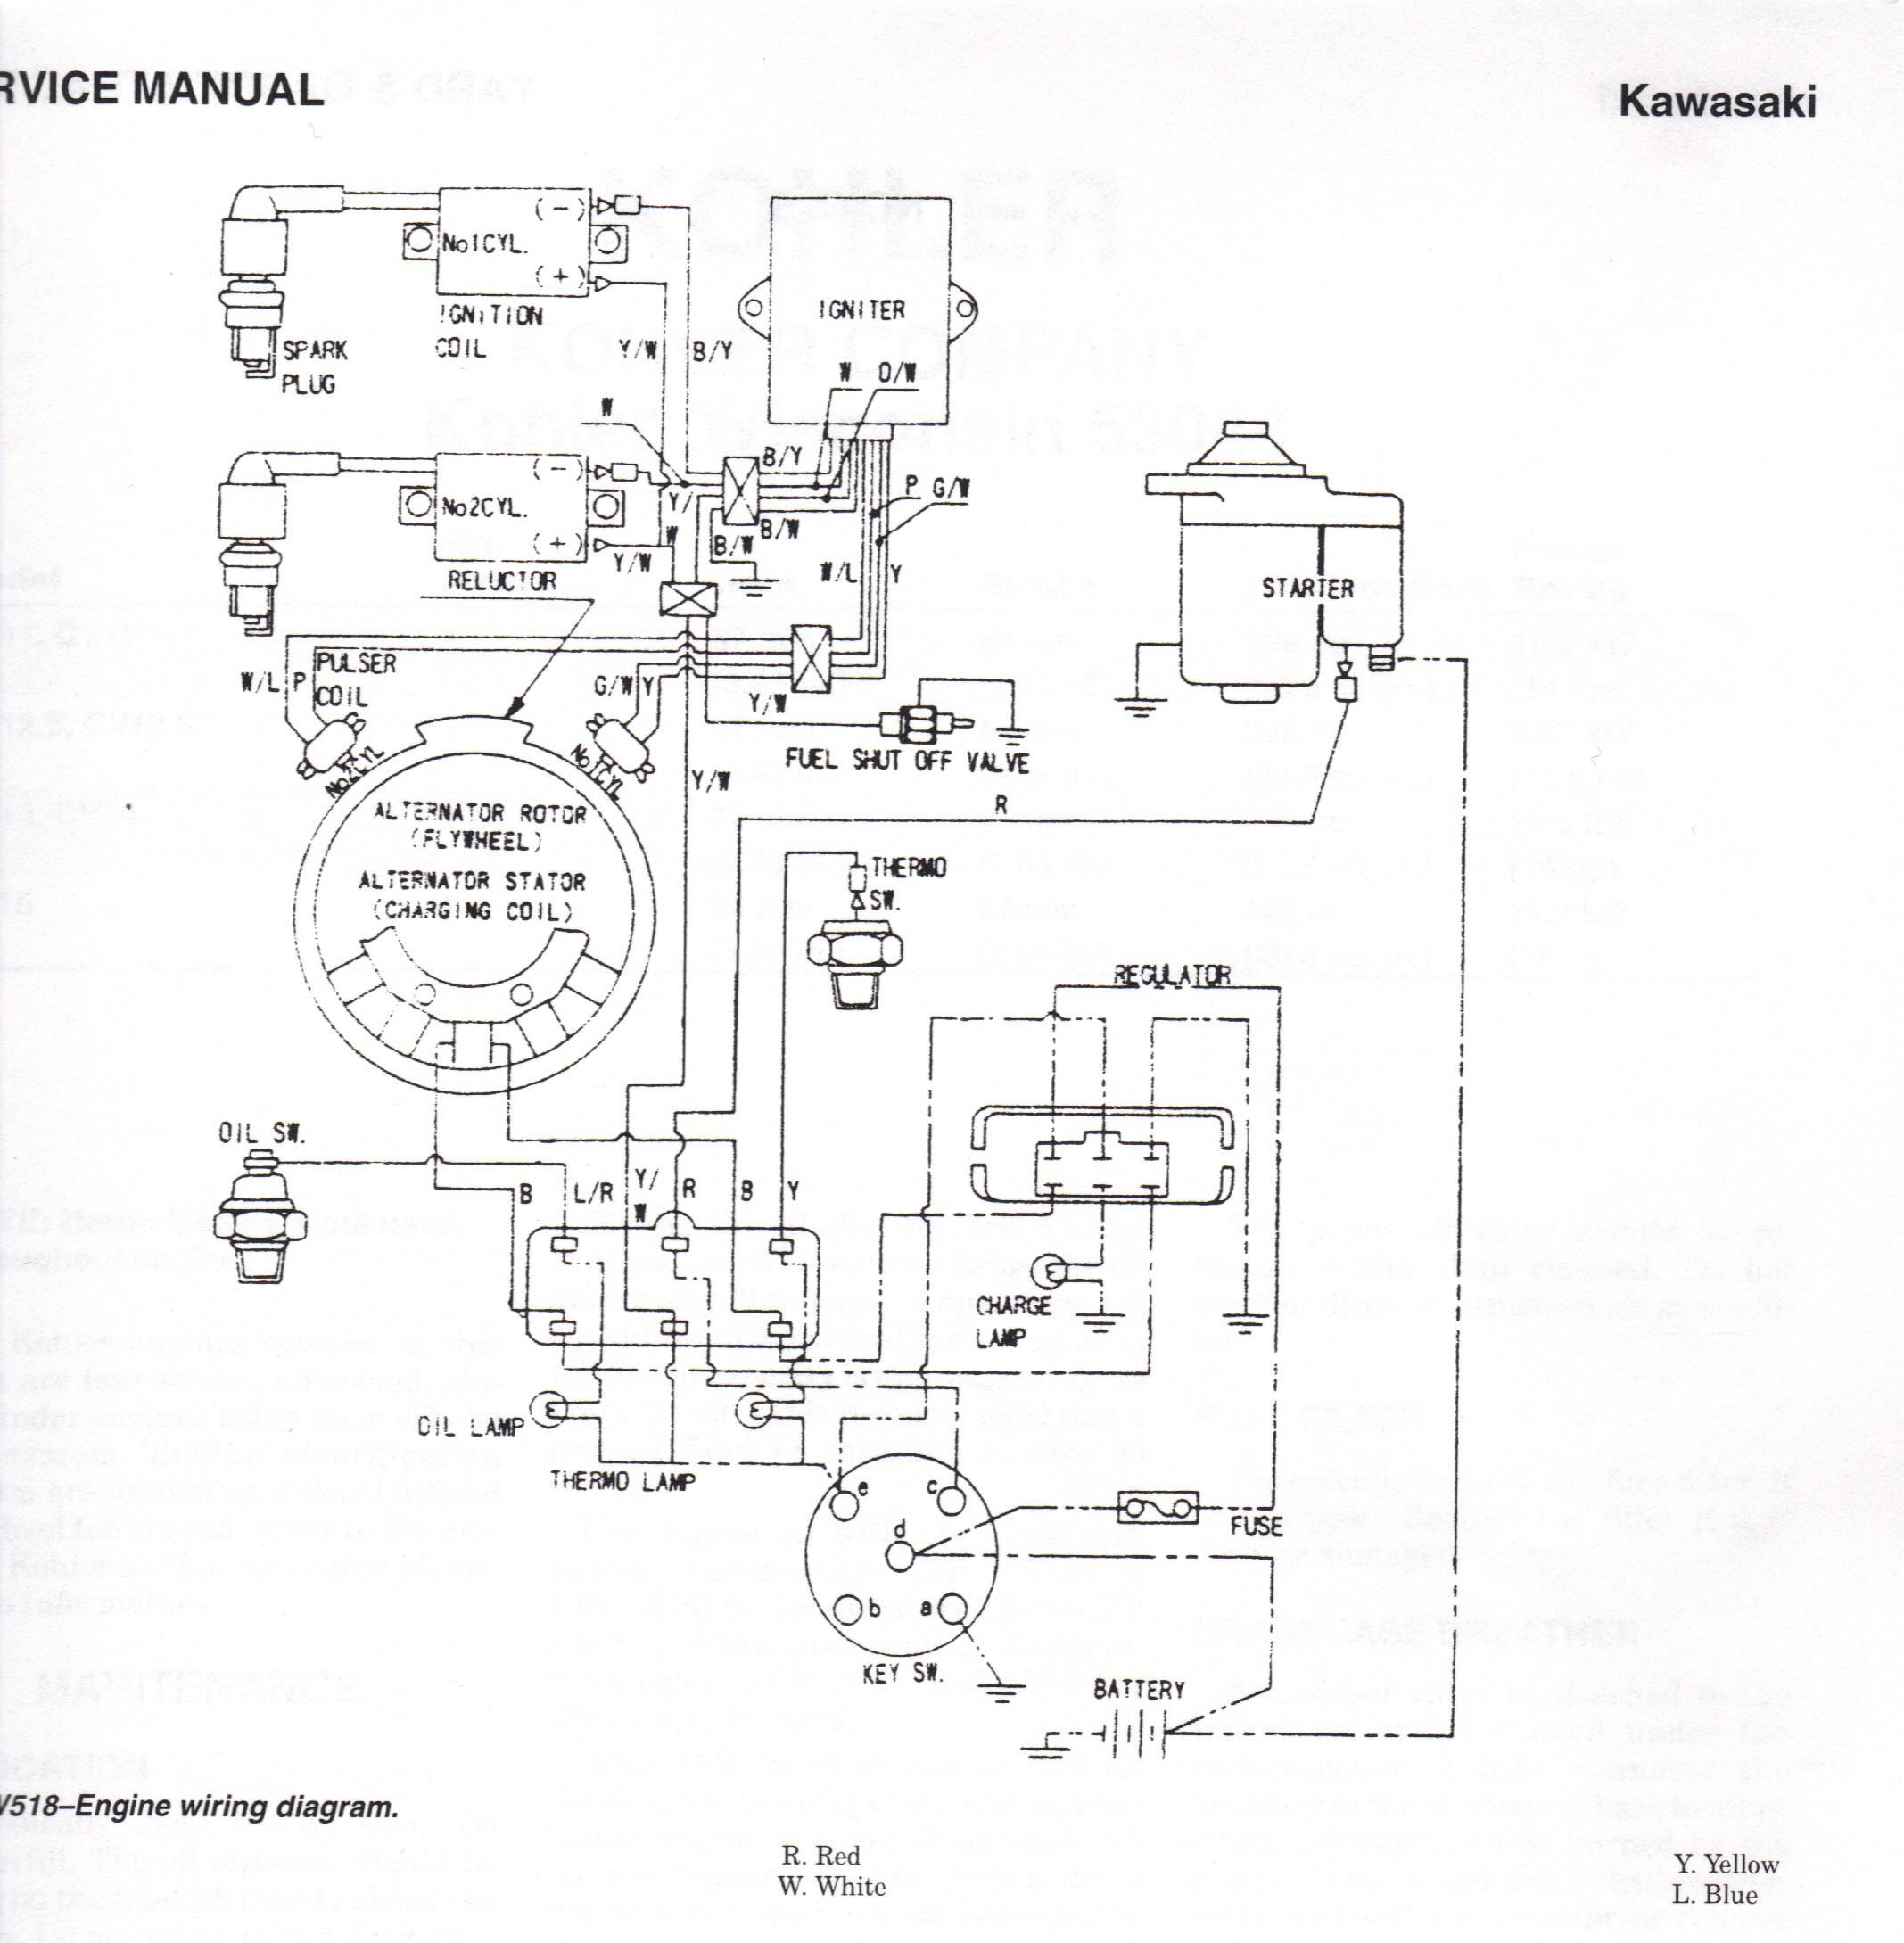 john deere 757 wiring diagram wiring diagram newwiring diagrams for 757 john deere 25 hp kawasaki [ 2135 x 2179 Pixel ]